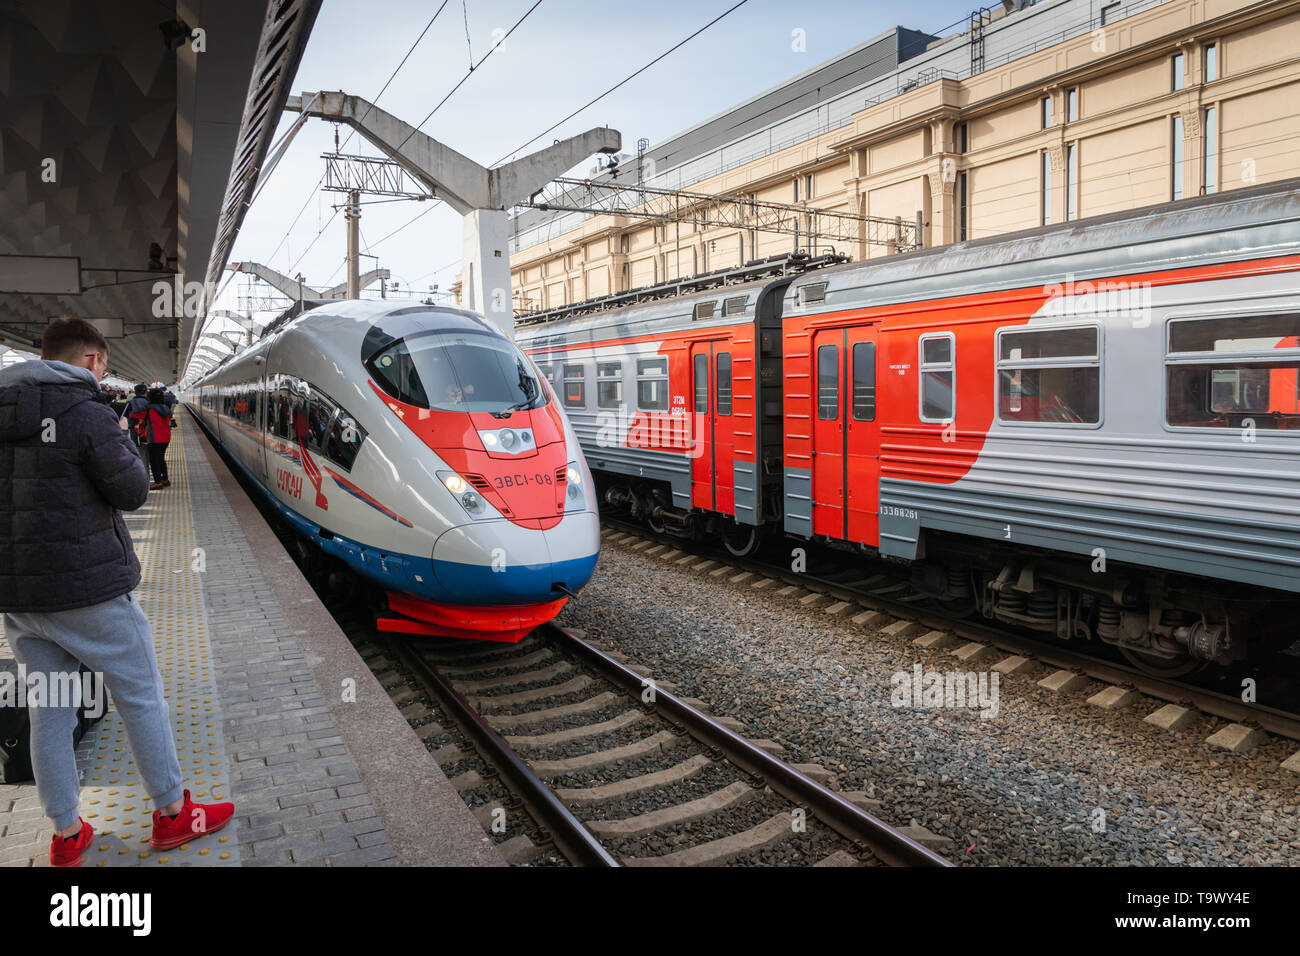 Saint Petersburg, Russia - May 2019: Sapsan train at the platform in Saint Petersburg Moscow train station. Sapsan is a Russian high-speed train - Stock Image